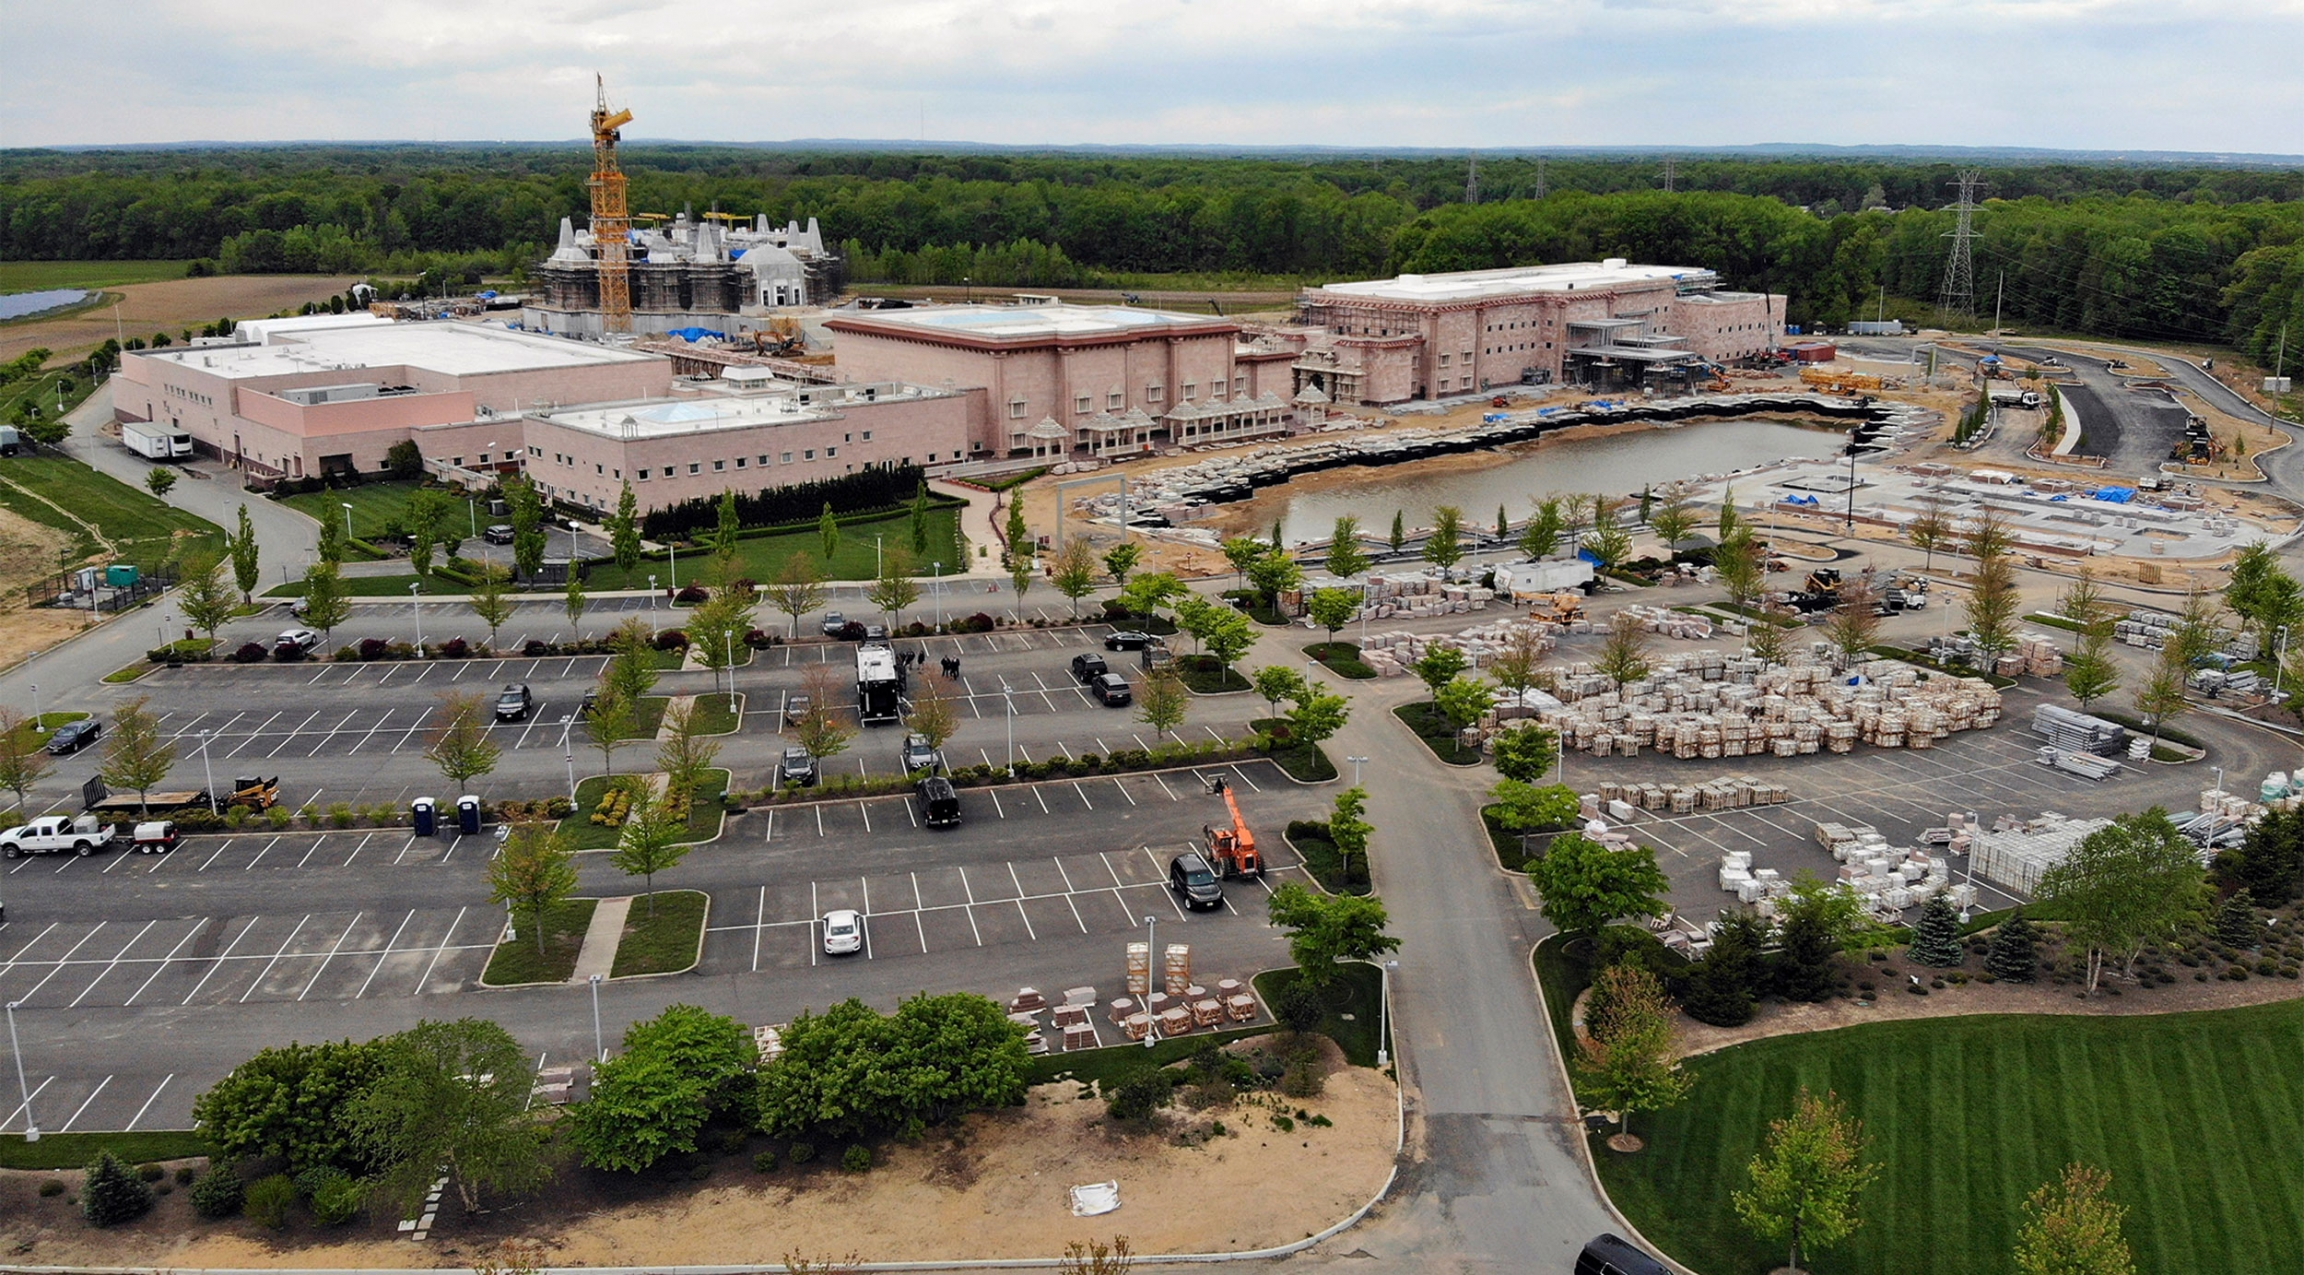 Aerial view of a Hindu temple next to a parking lot and greenery.